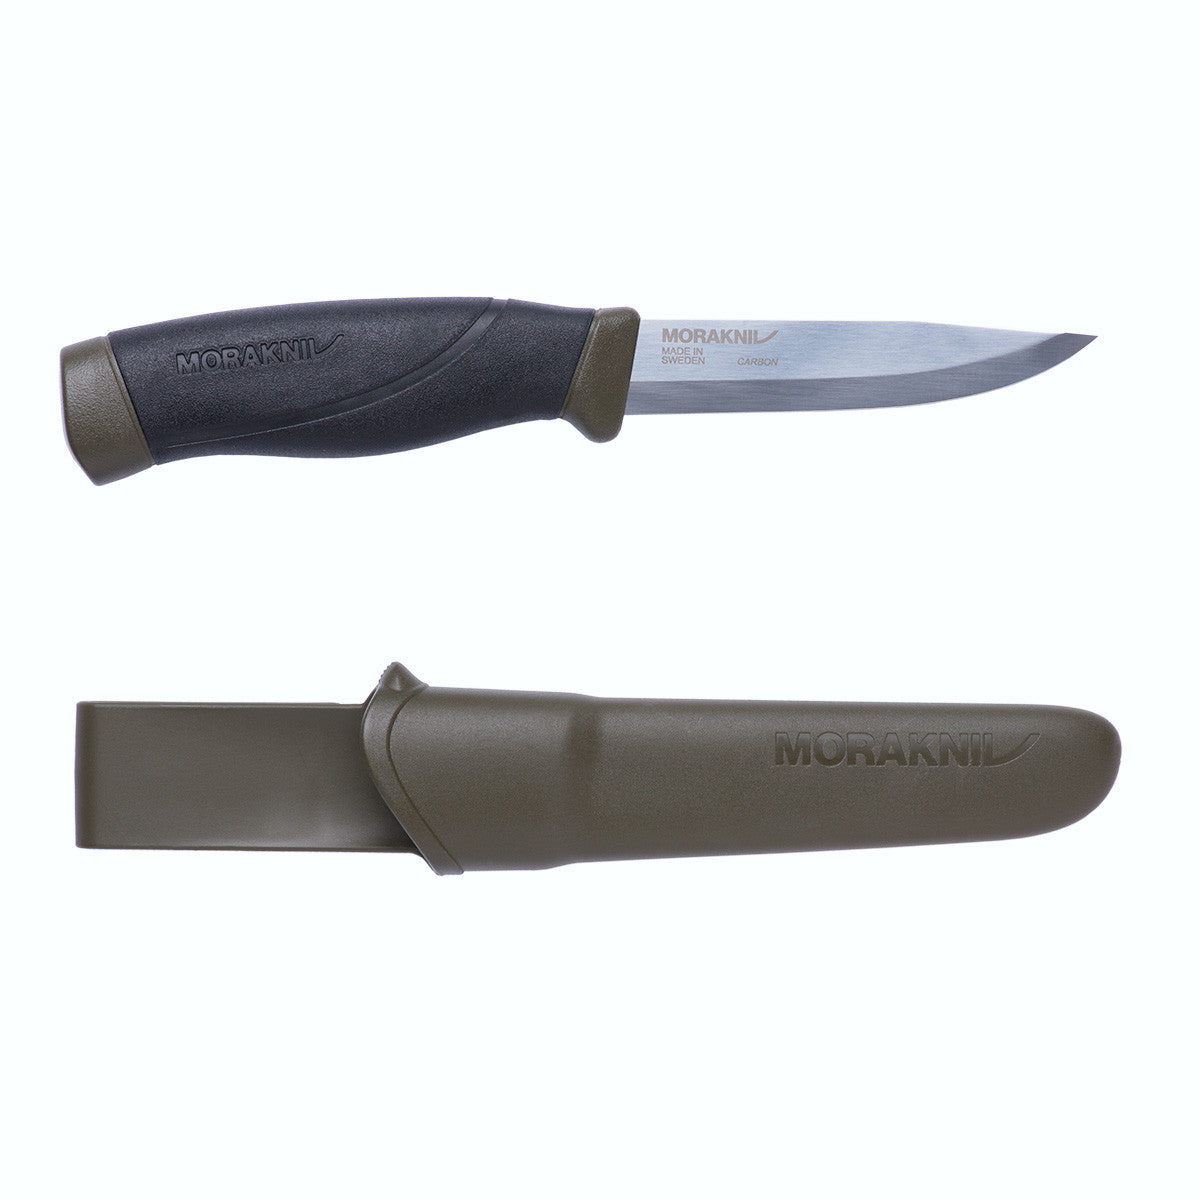 Morakniv Morakniv Heavy Duty MG Companion Olive/Black Outdoor Sports Knife with Clam Sheath - BNR Industrial